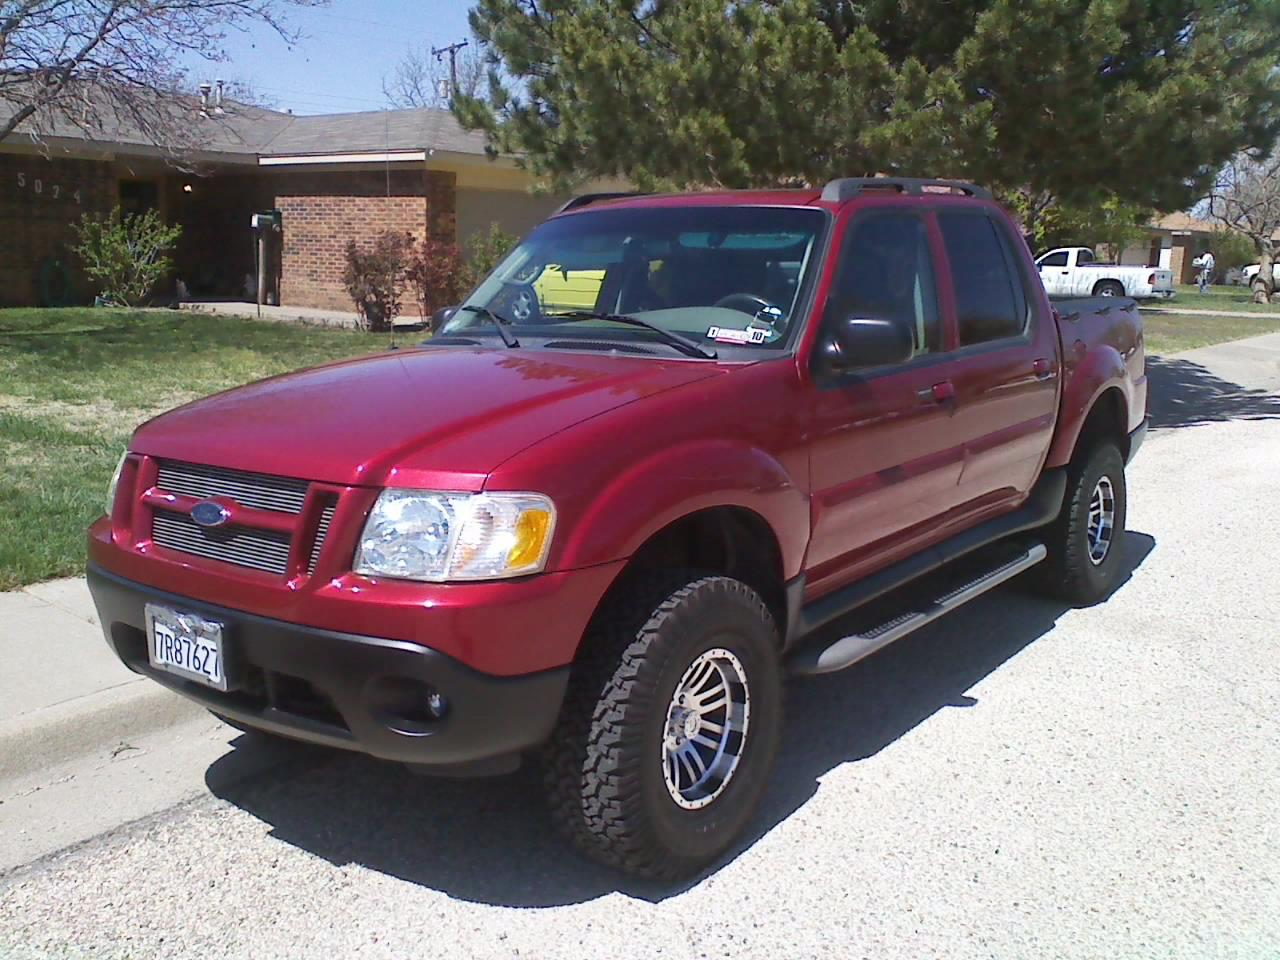 bustinout04chevy 39 s 2003 ford explorer sport trac in amarillo tx. Cars Review. Best American Auto & Cars Review